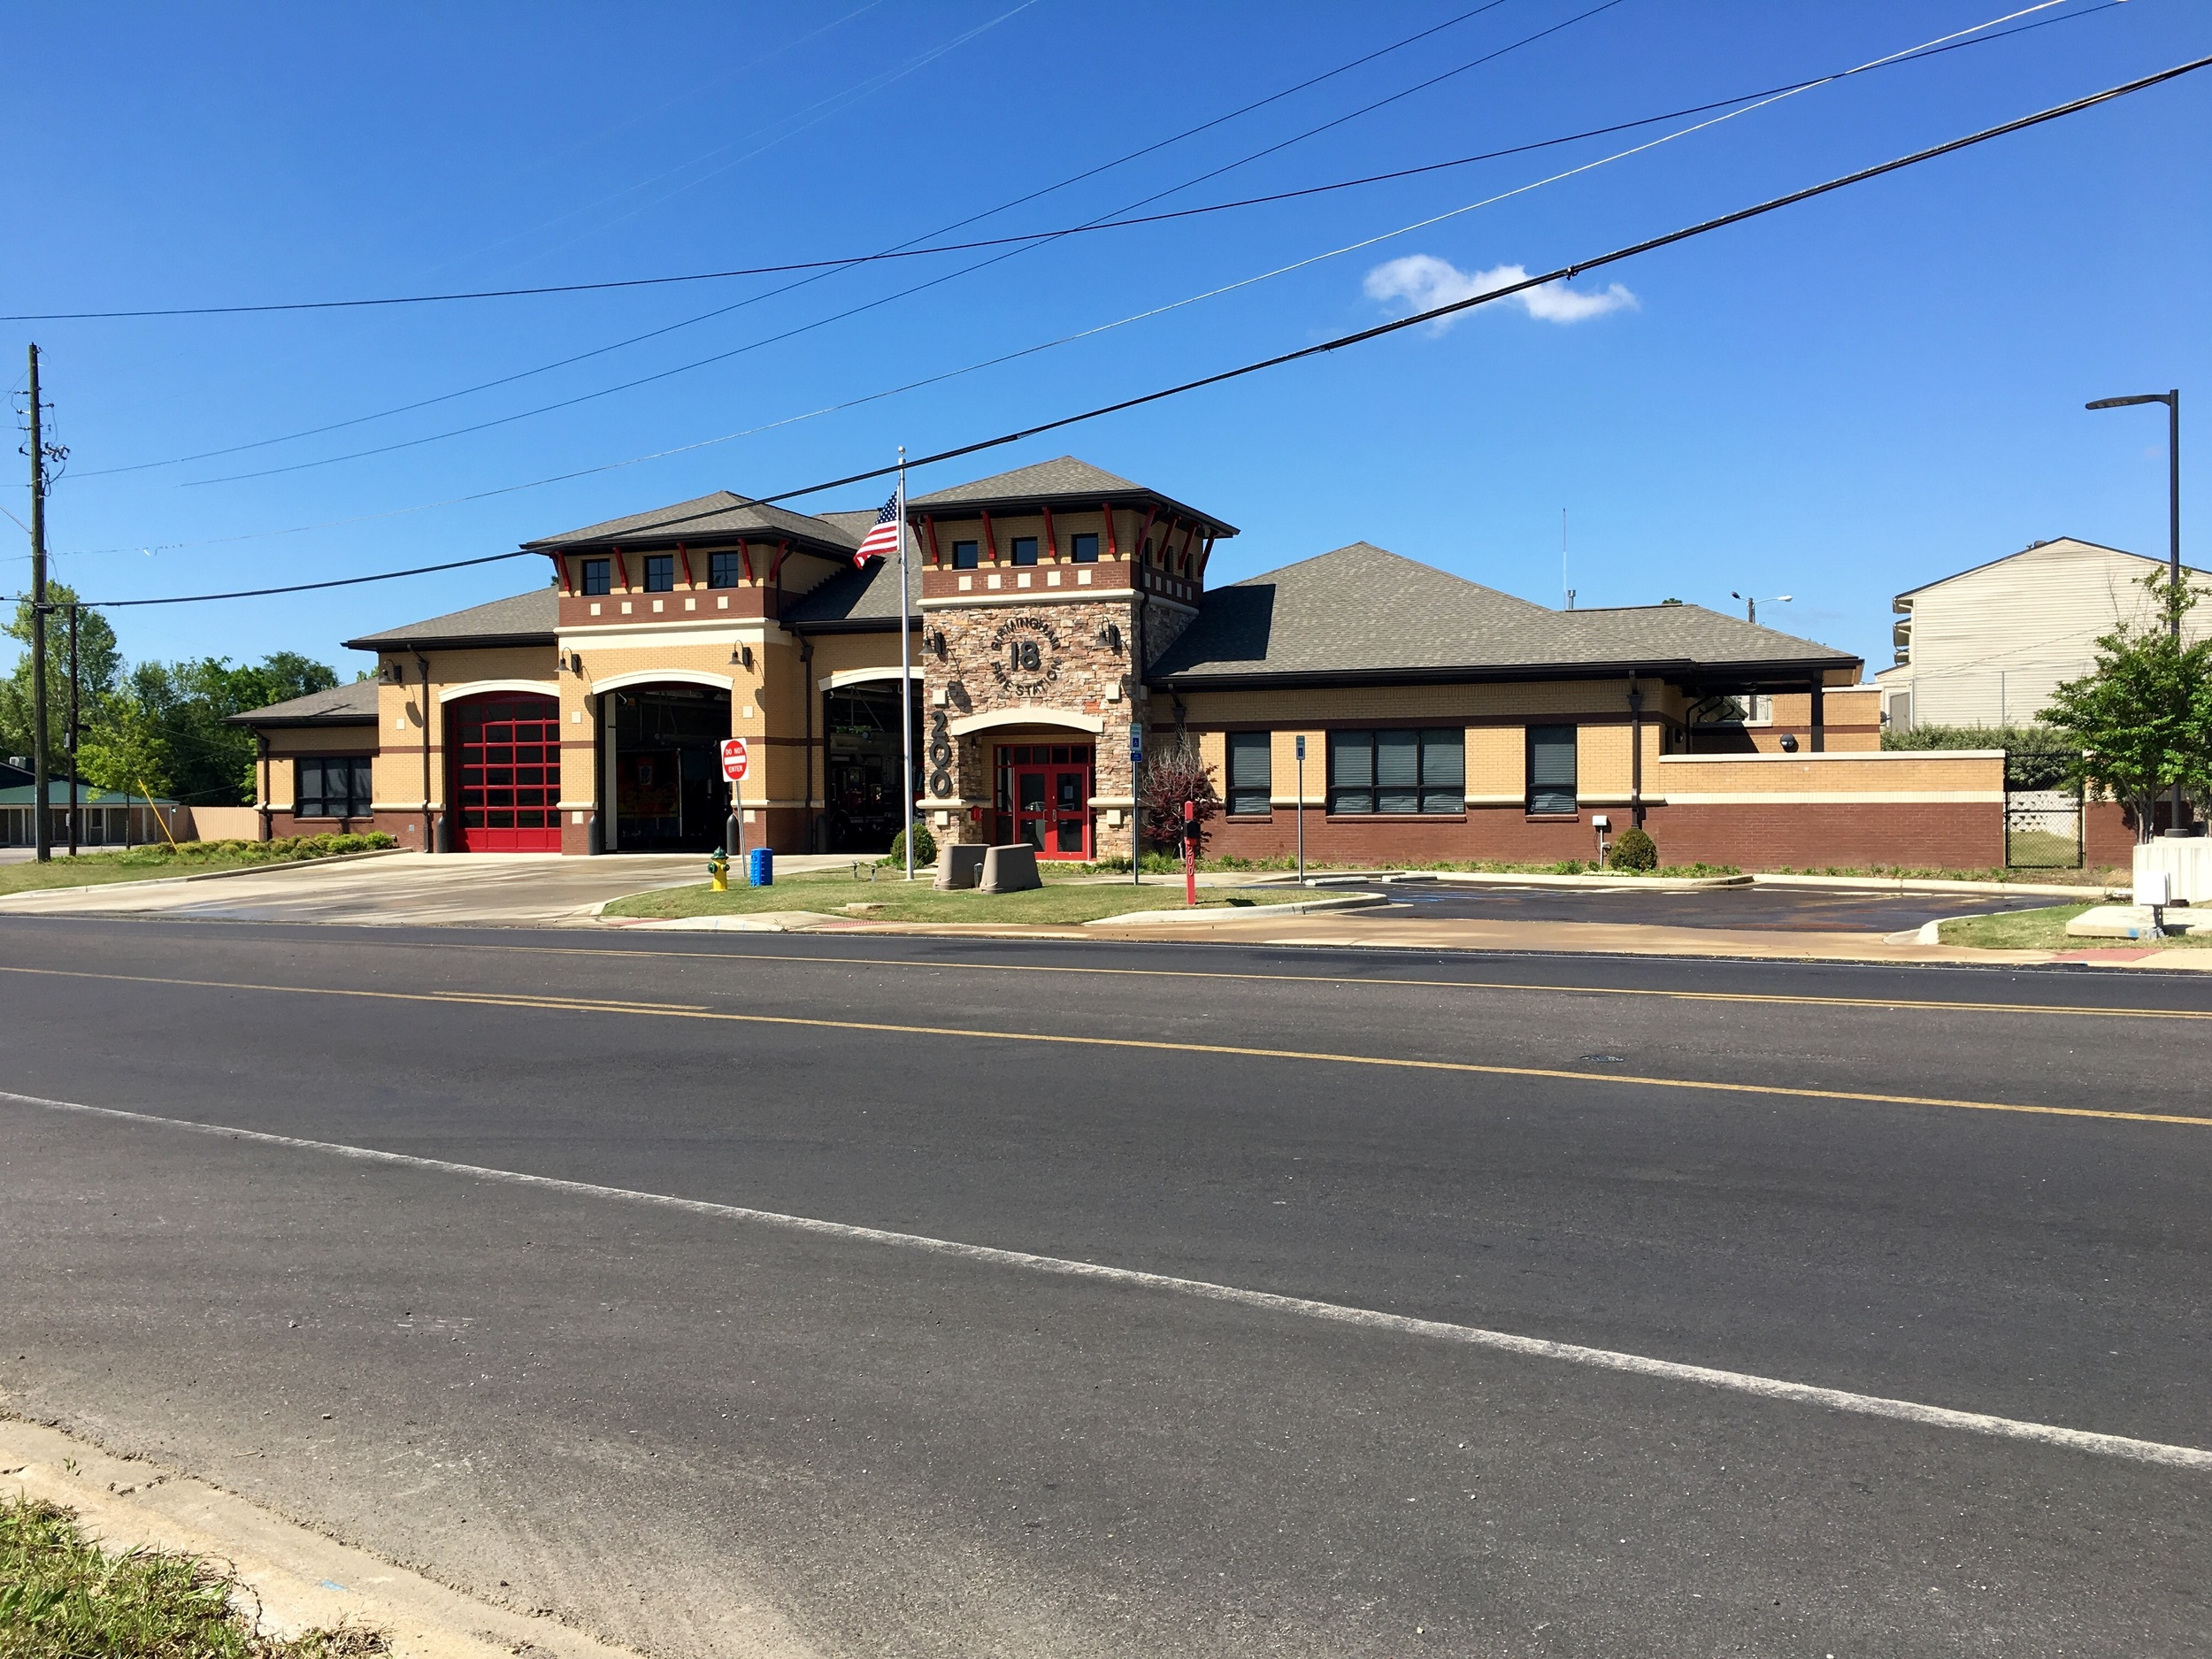 Pratt City Fire Department. Birmingham Fire Station No. 18.  The design was done by local architecture firm Dorsey Architects and Associates   Photo credit: Charlie Abram, Graduate Architect @ BPA